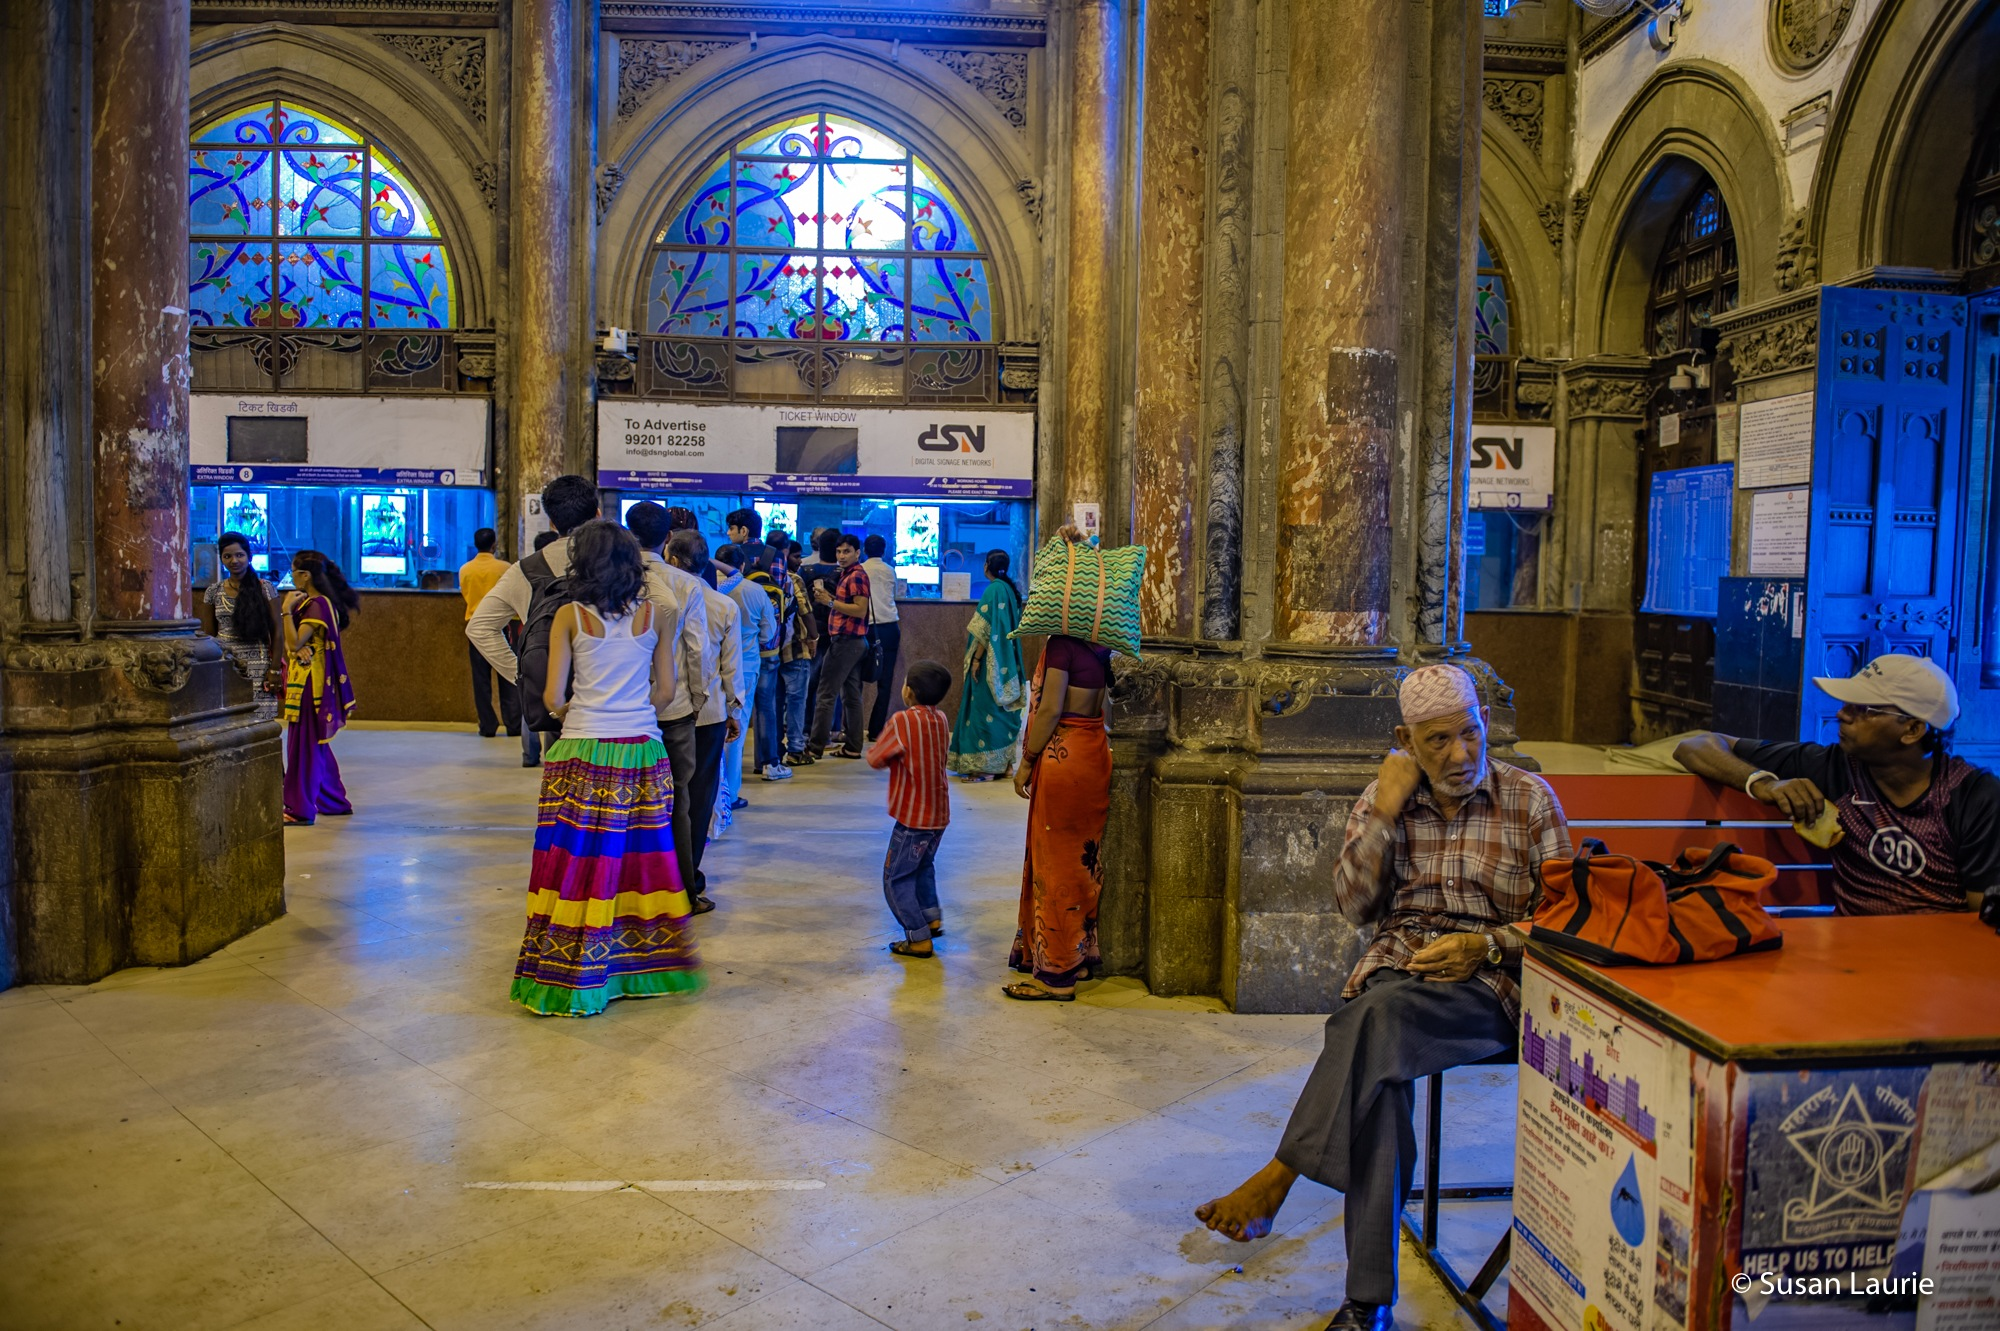 Mumbai Train Station by Susan Laurie